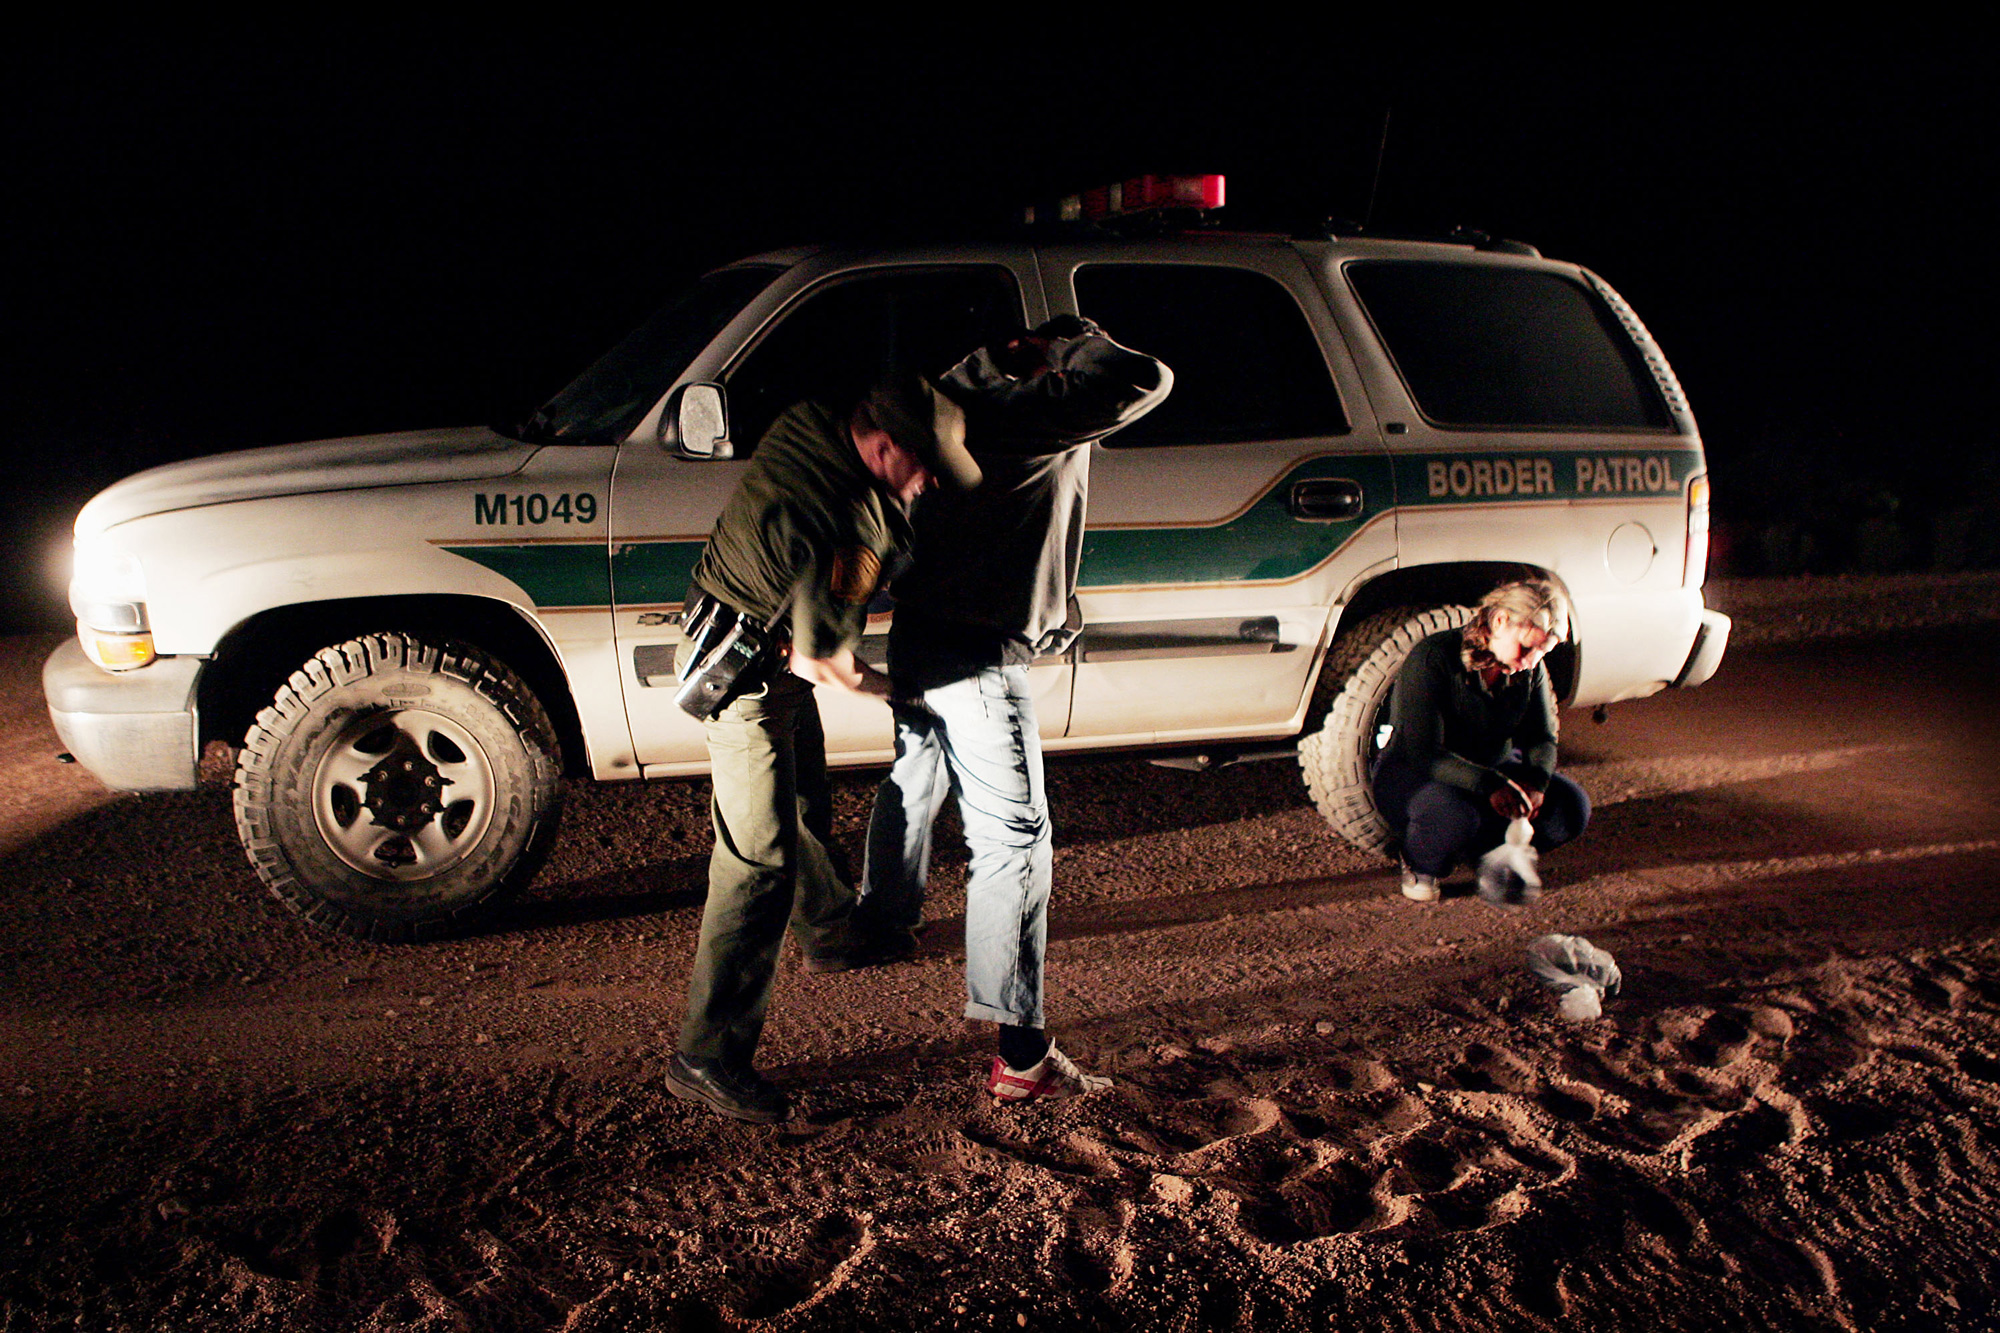 DOUGLAS, AZ - APRIL 4:  Border Control Agent Jason Huberd searches migrants captured near the border April 4, 2005 near Douglas, Arizona. Illegal immigration in the region has slowed over the past few days, partly due to the presence of volunteers from the Minuteman Project. The projects participants are expected to fan out across a 23 mile stretch on the Arizona side of the border to search for Illegal aliens who are making the trek into the U.S. from Mexico. (Photo by Scott Olson/Getty Images)